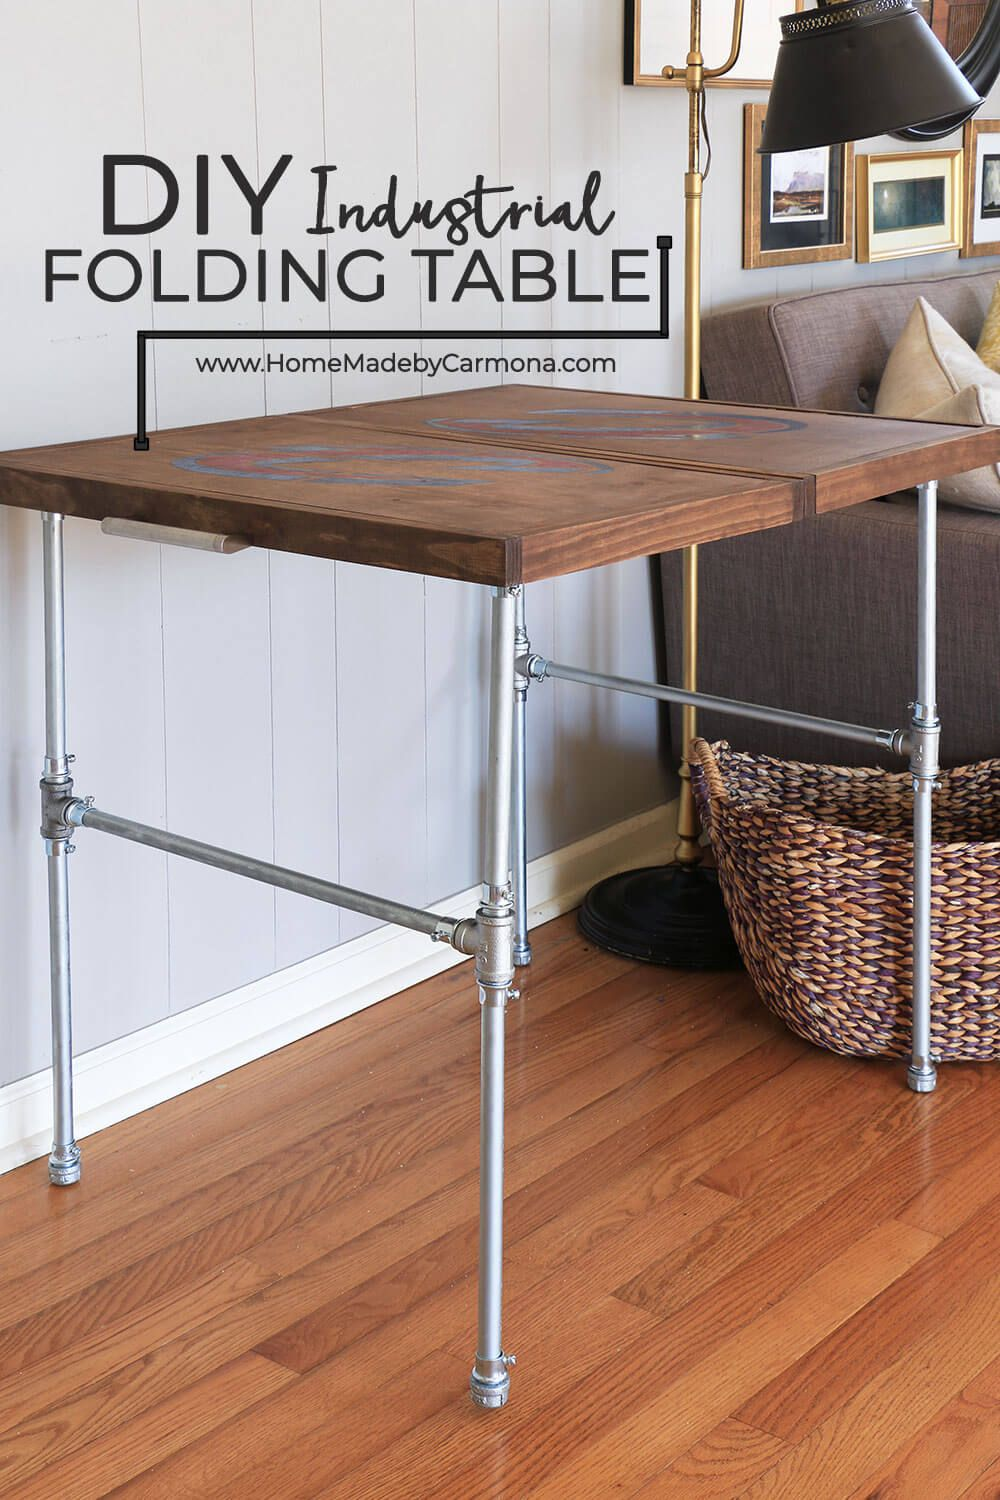 Diy Industrial Folding Table Home Made By Carmona Wood Folding Table Folding Table Diy Diy Living Room Decor